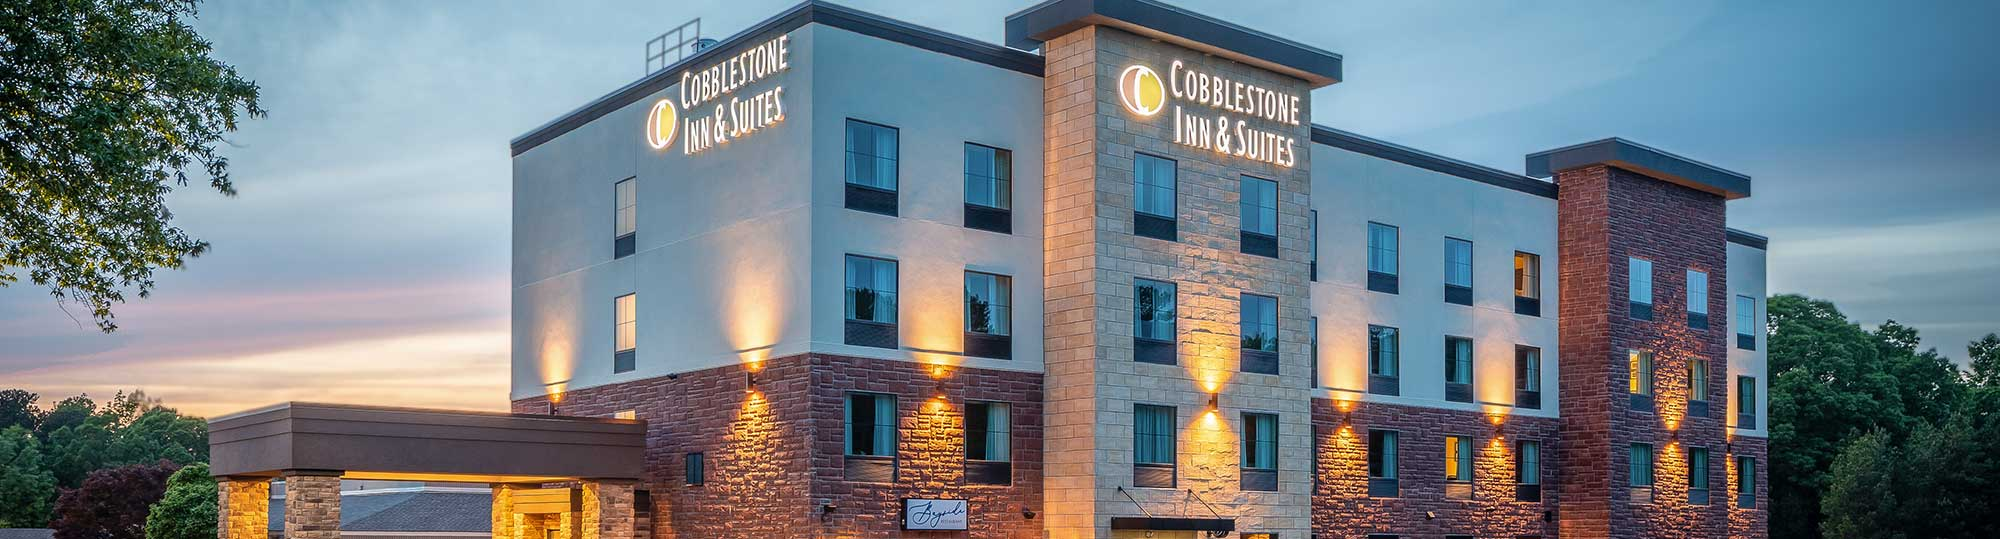 Cobblestone Inn and Suites Fairfield Bay